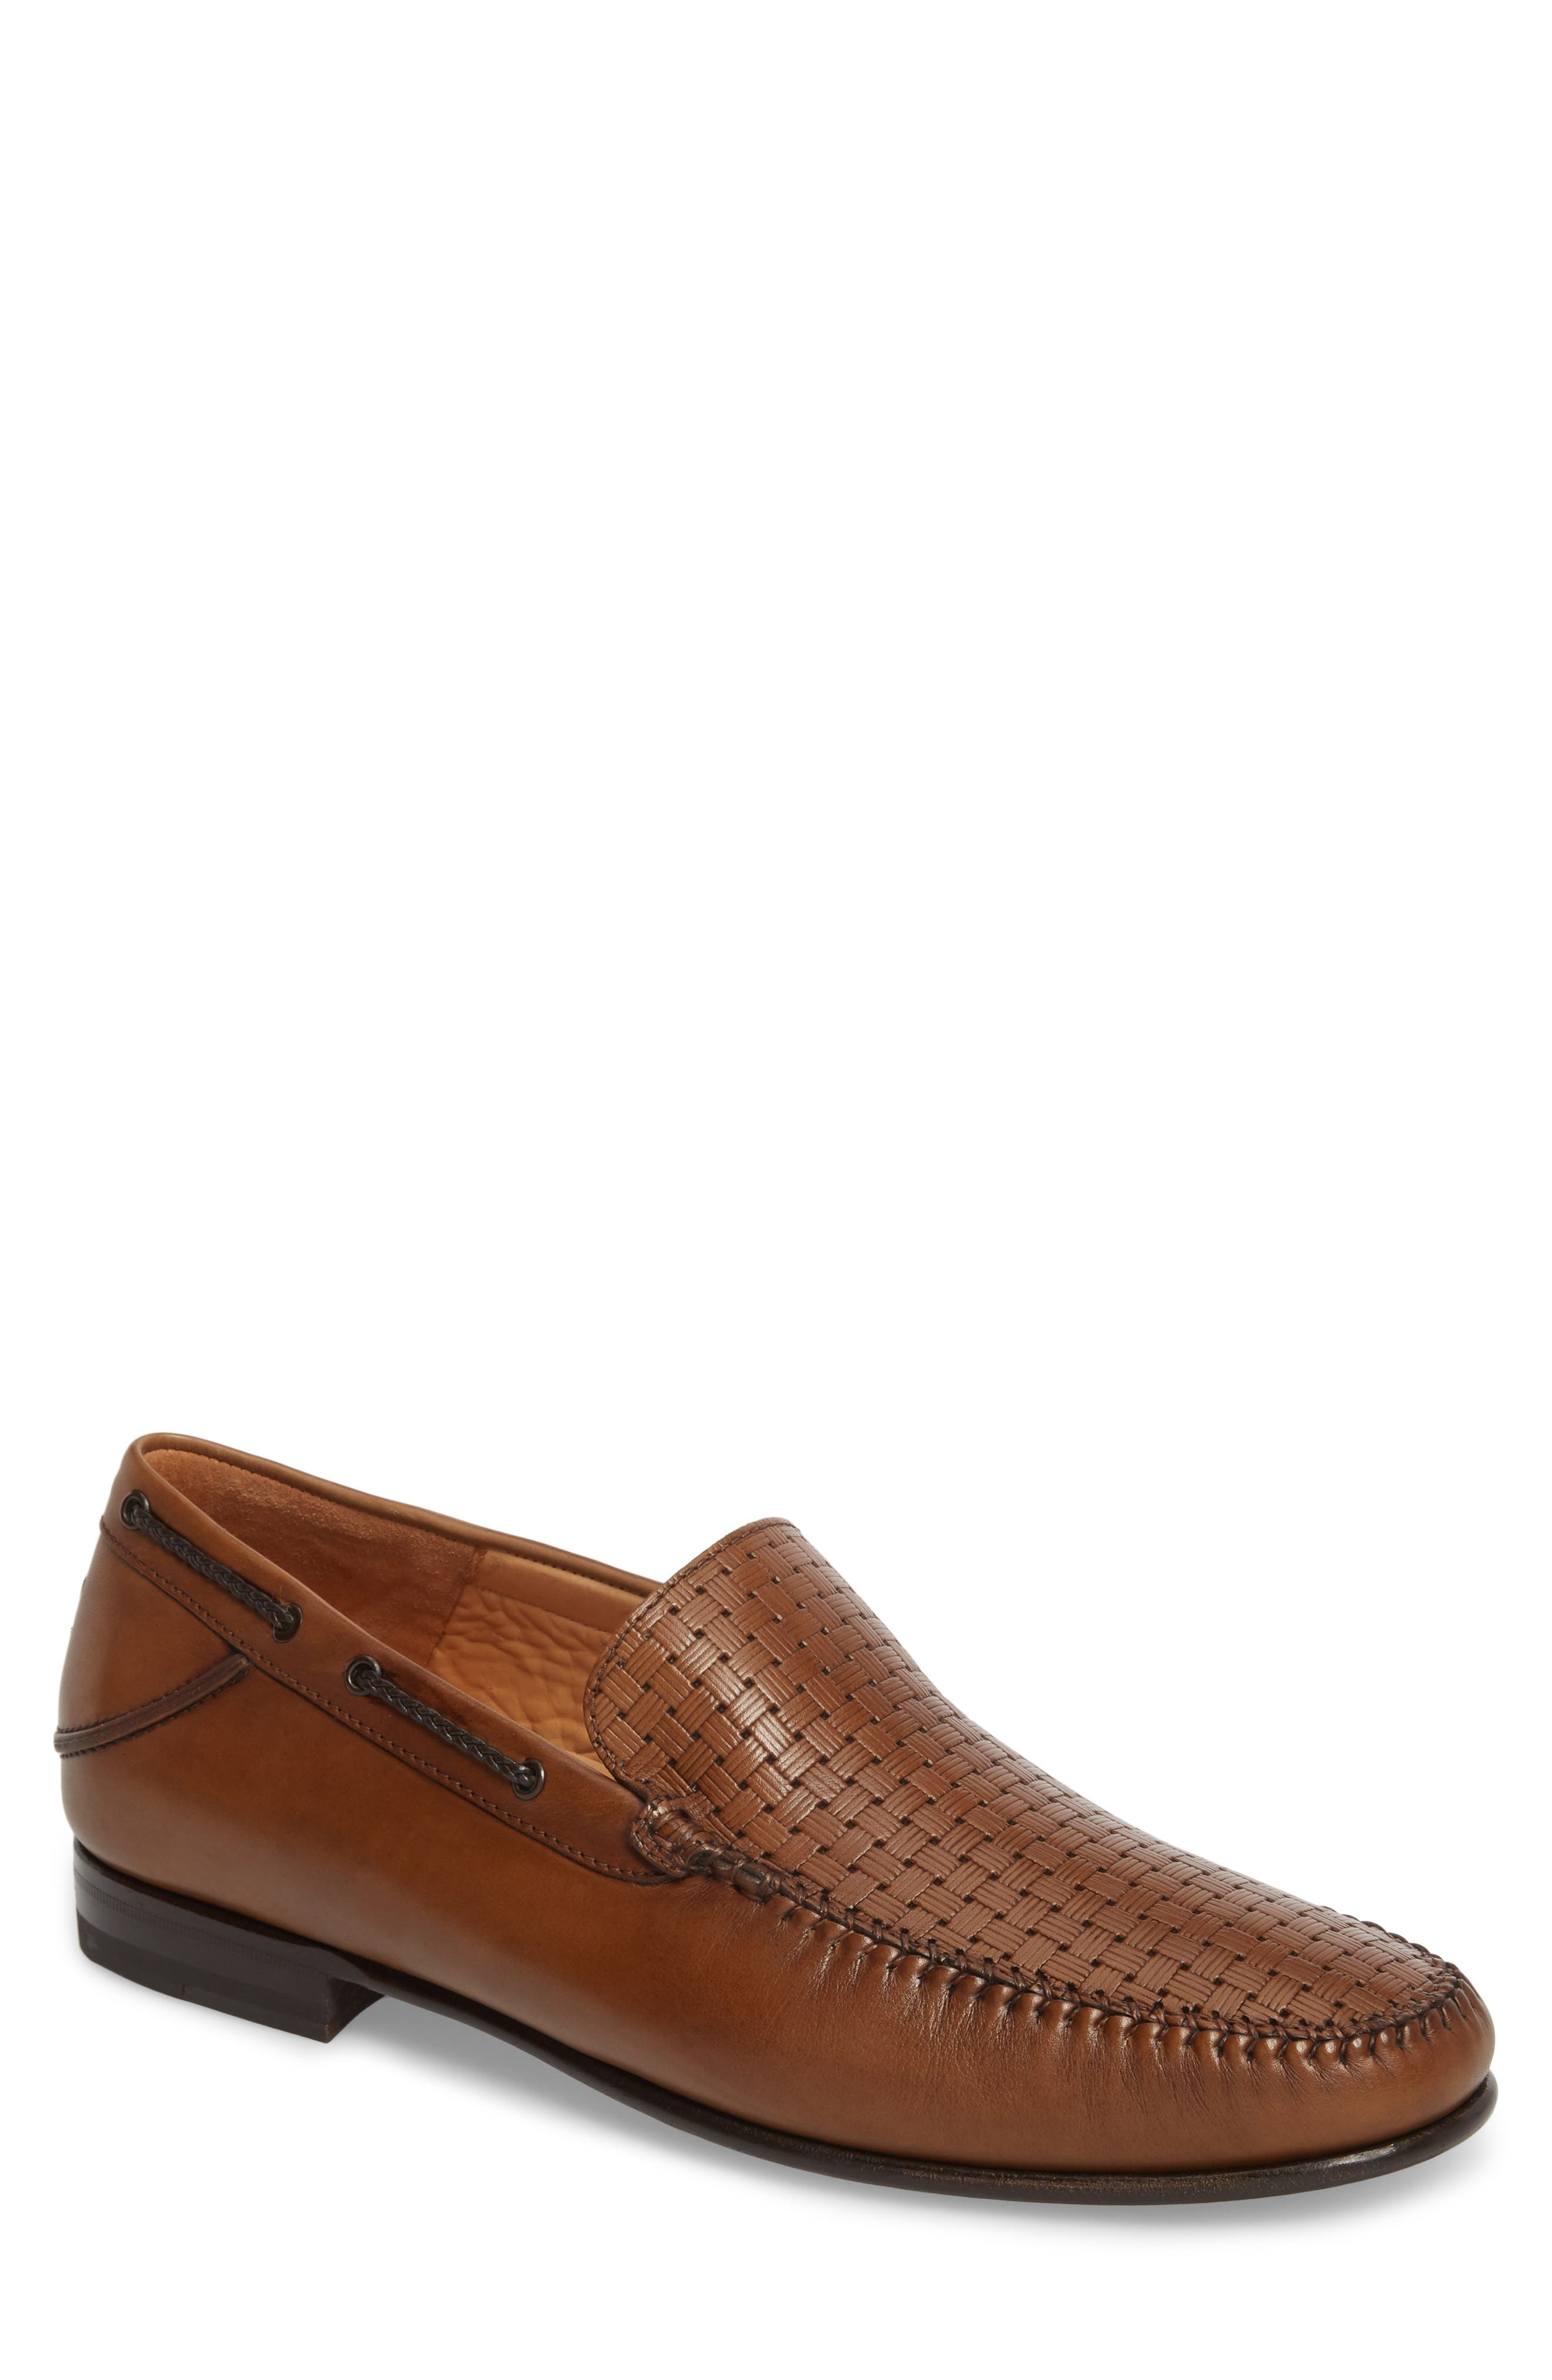 Jano Embossed Moc-Toe Loafer,                             Main thumbnail 1, color,                             Cognac Leather